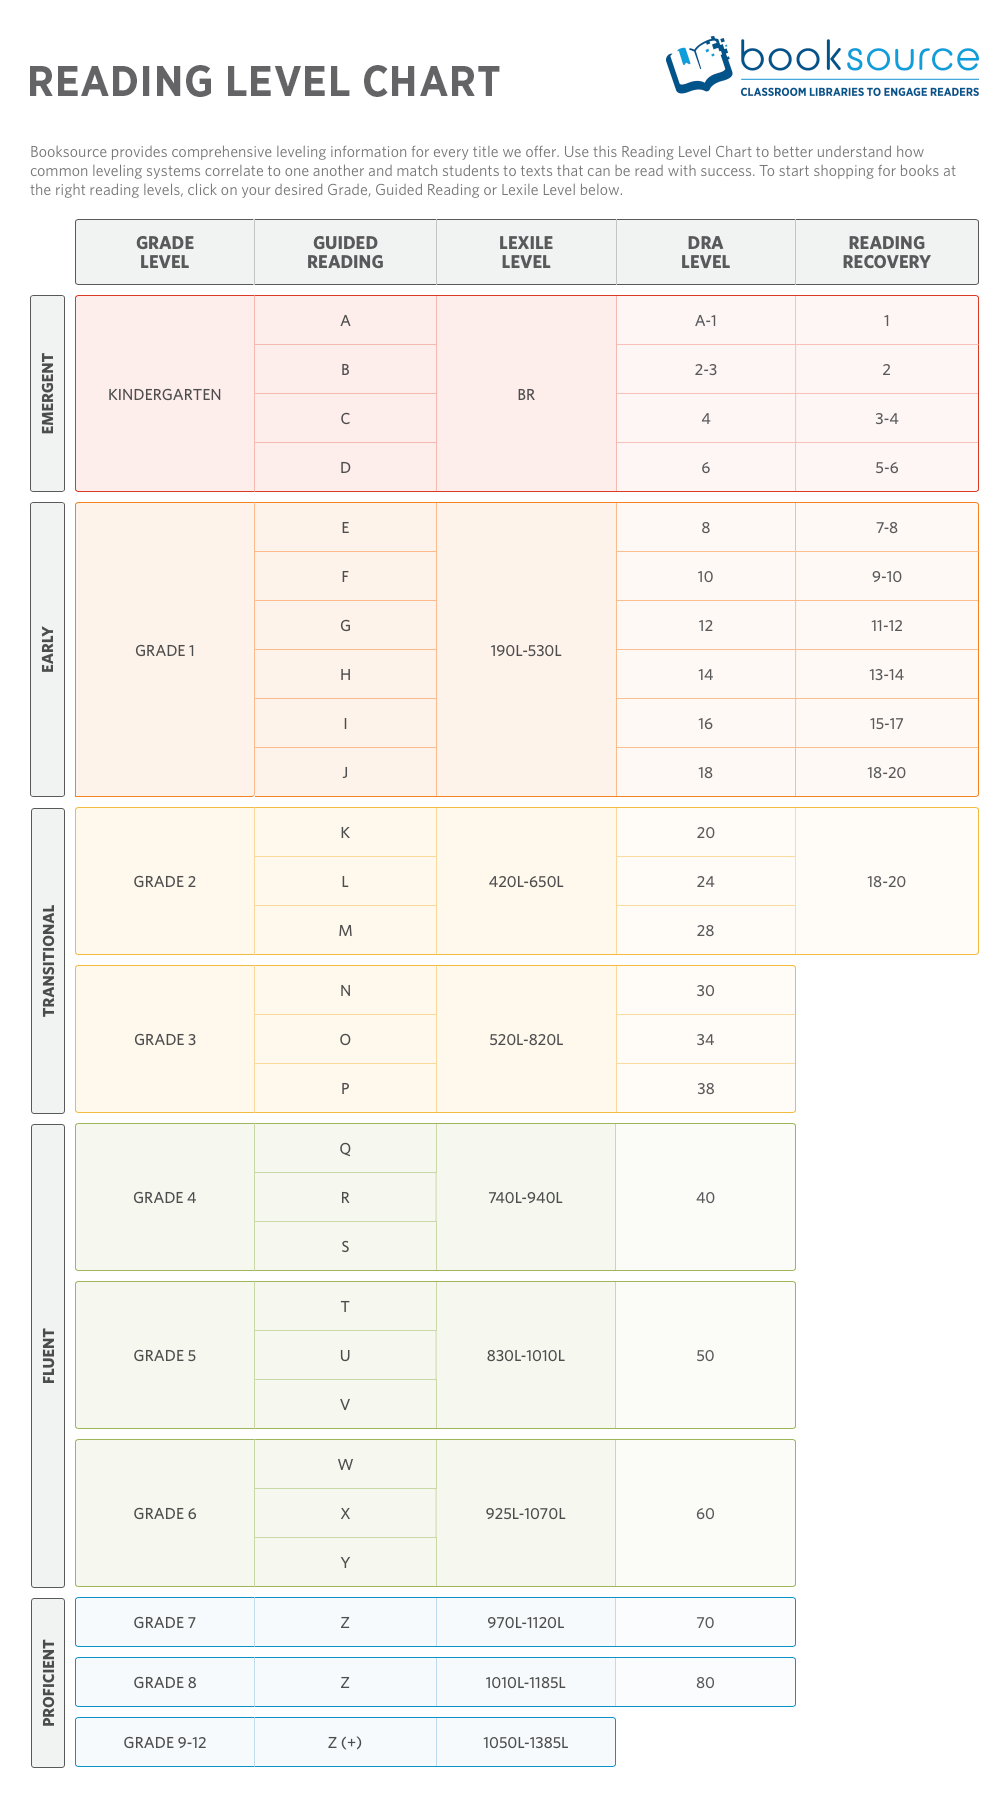 Reading levels whether guided reading level lexile level dra reading level systems correlate to one another and select books at the right reading levels for your students with the booksource reading level chart nvjuhfo Image collections